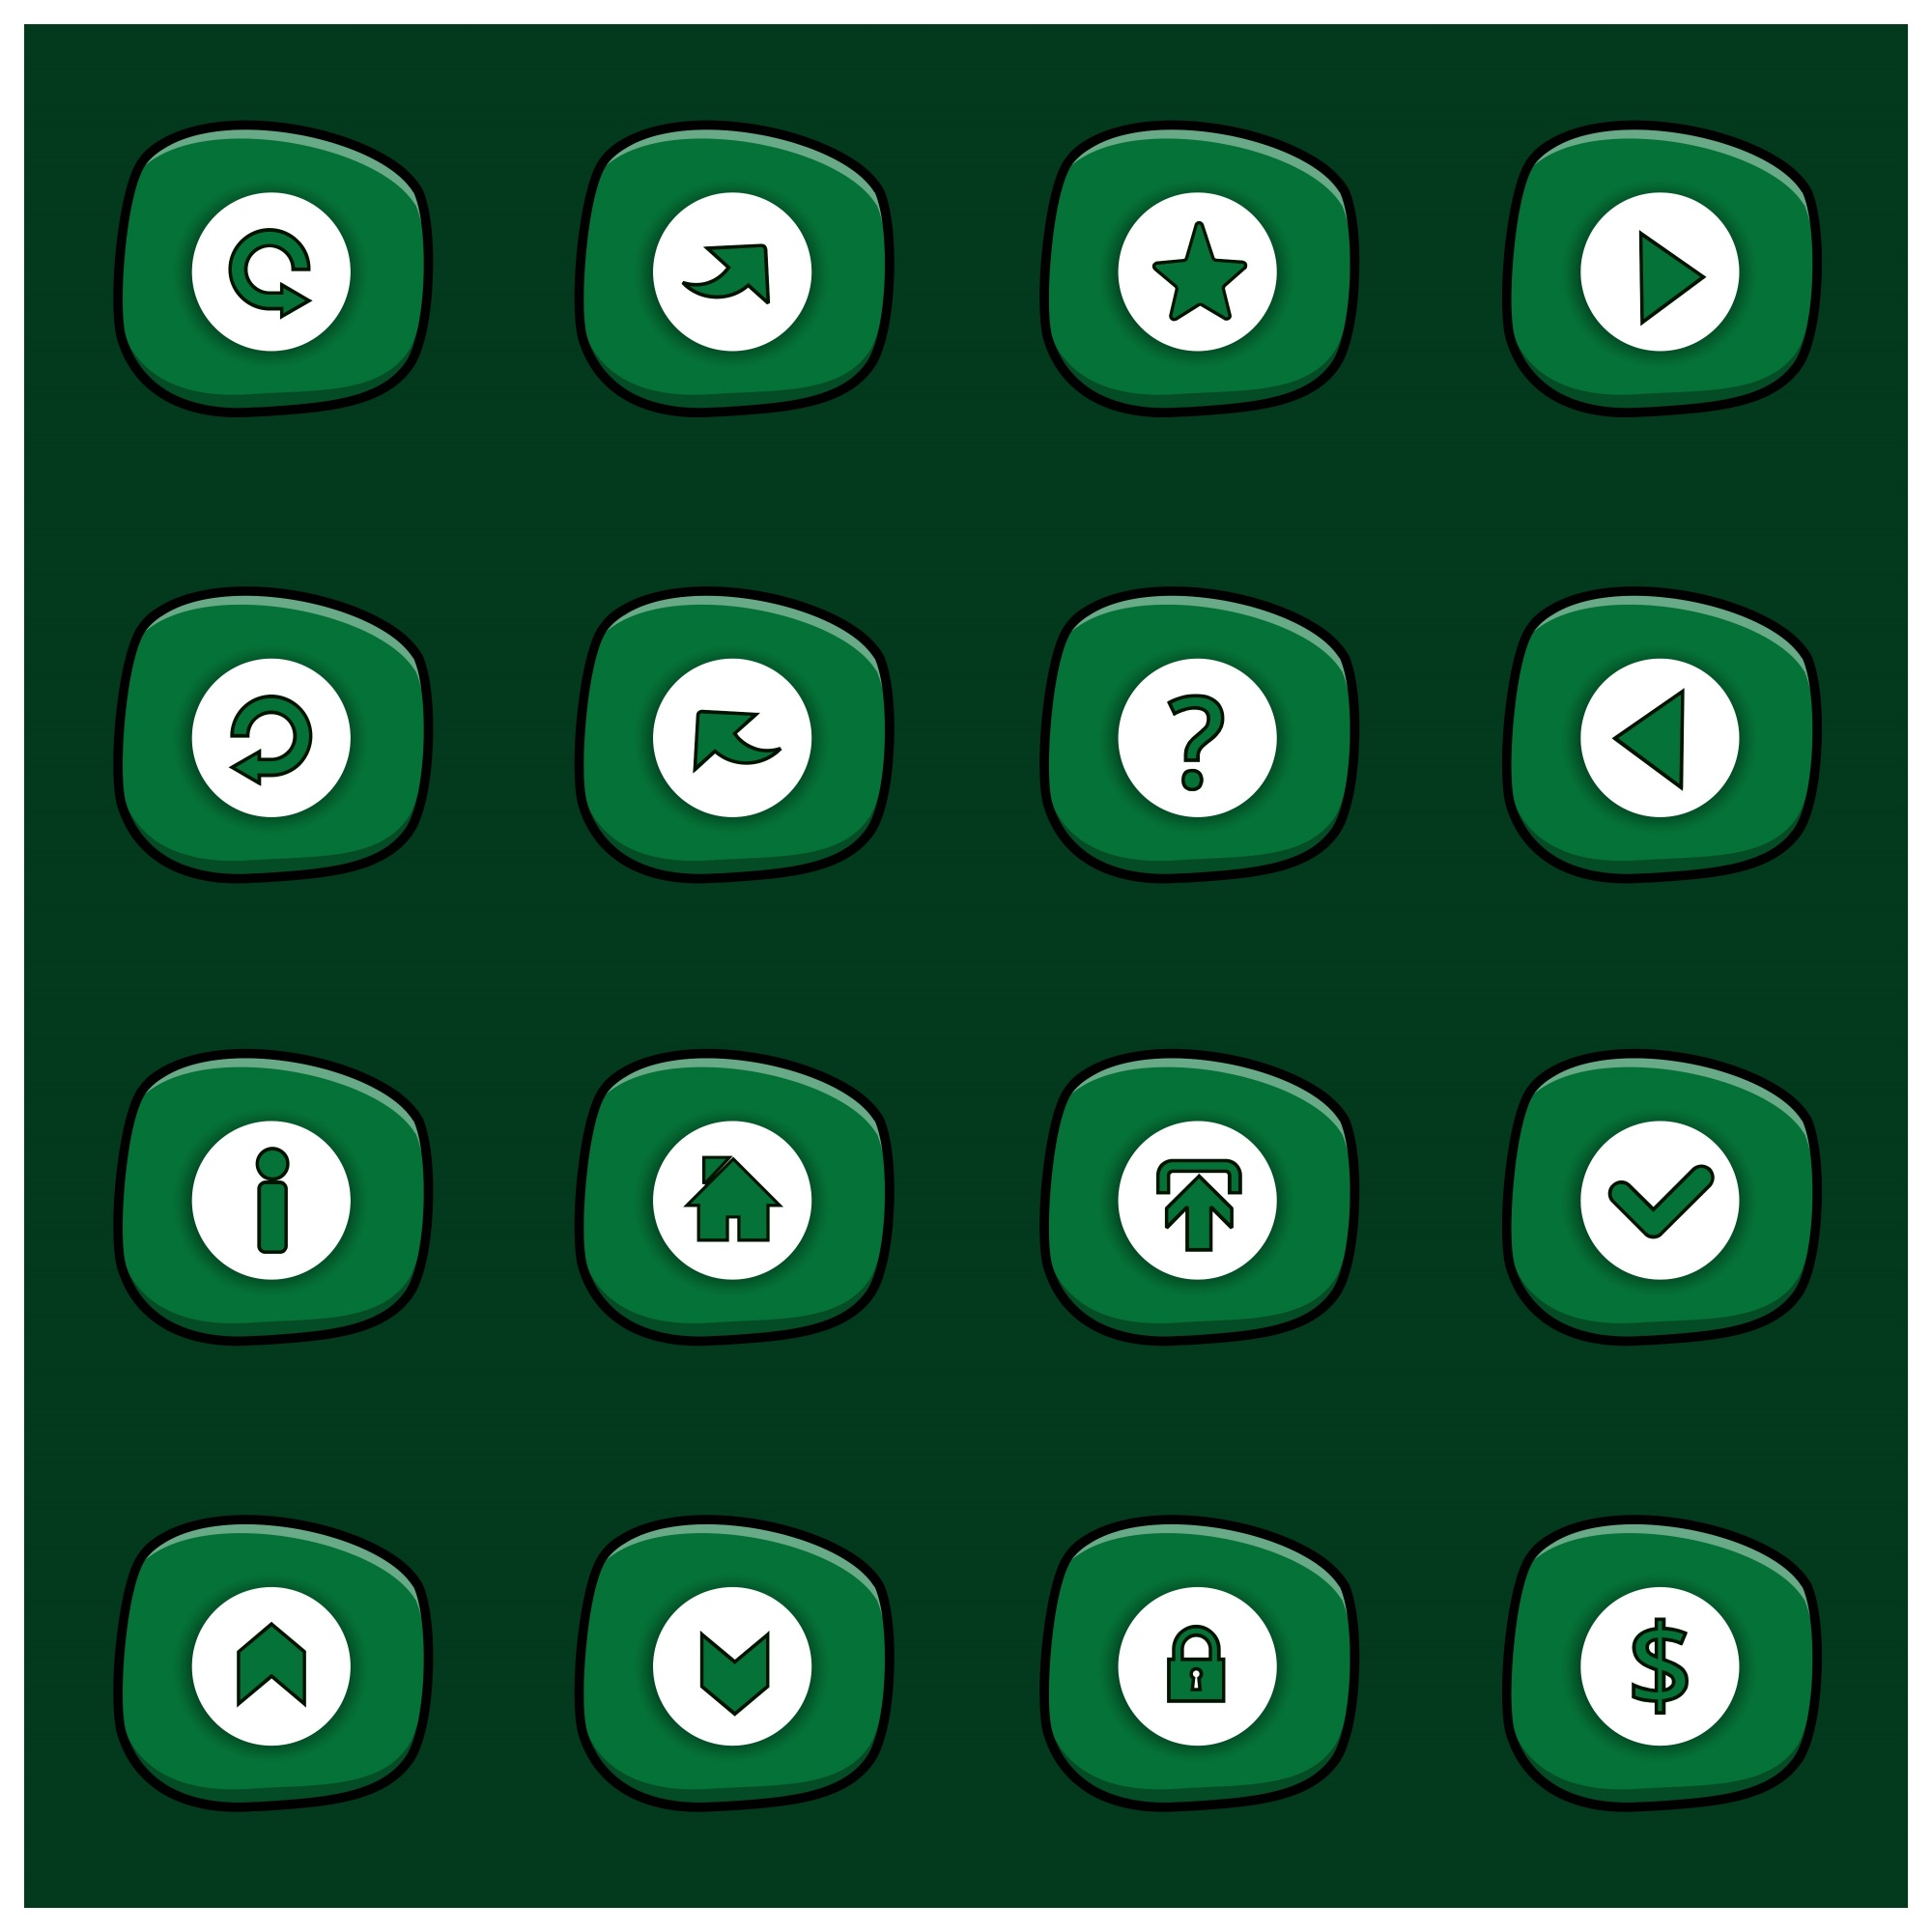 Set of 16 white icons on rounded green rectangles